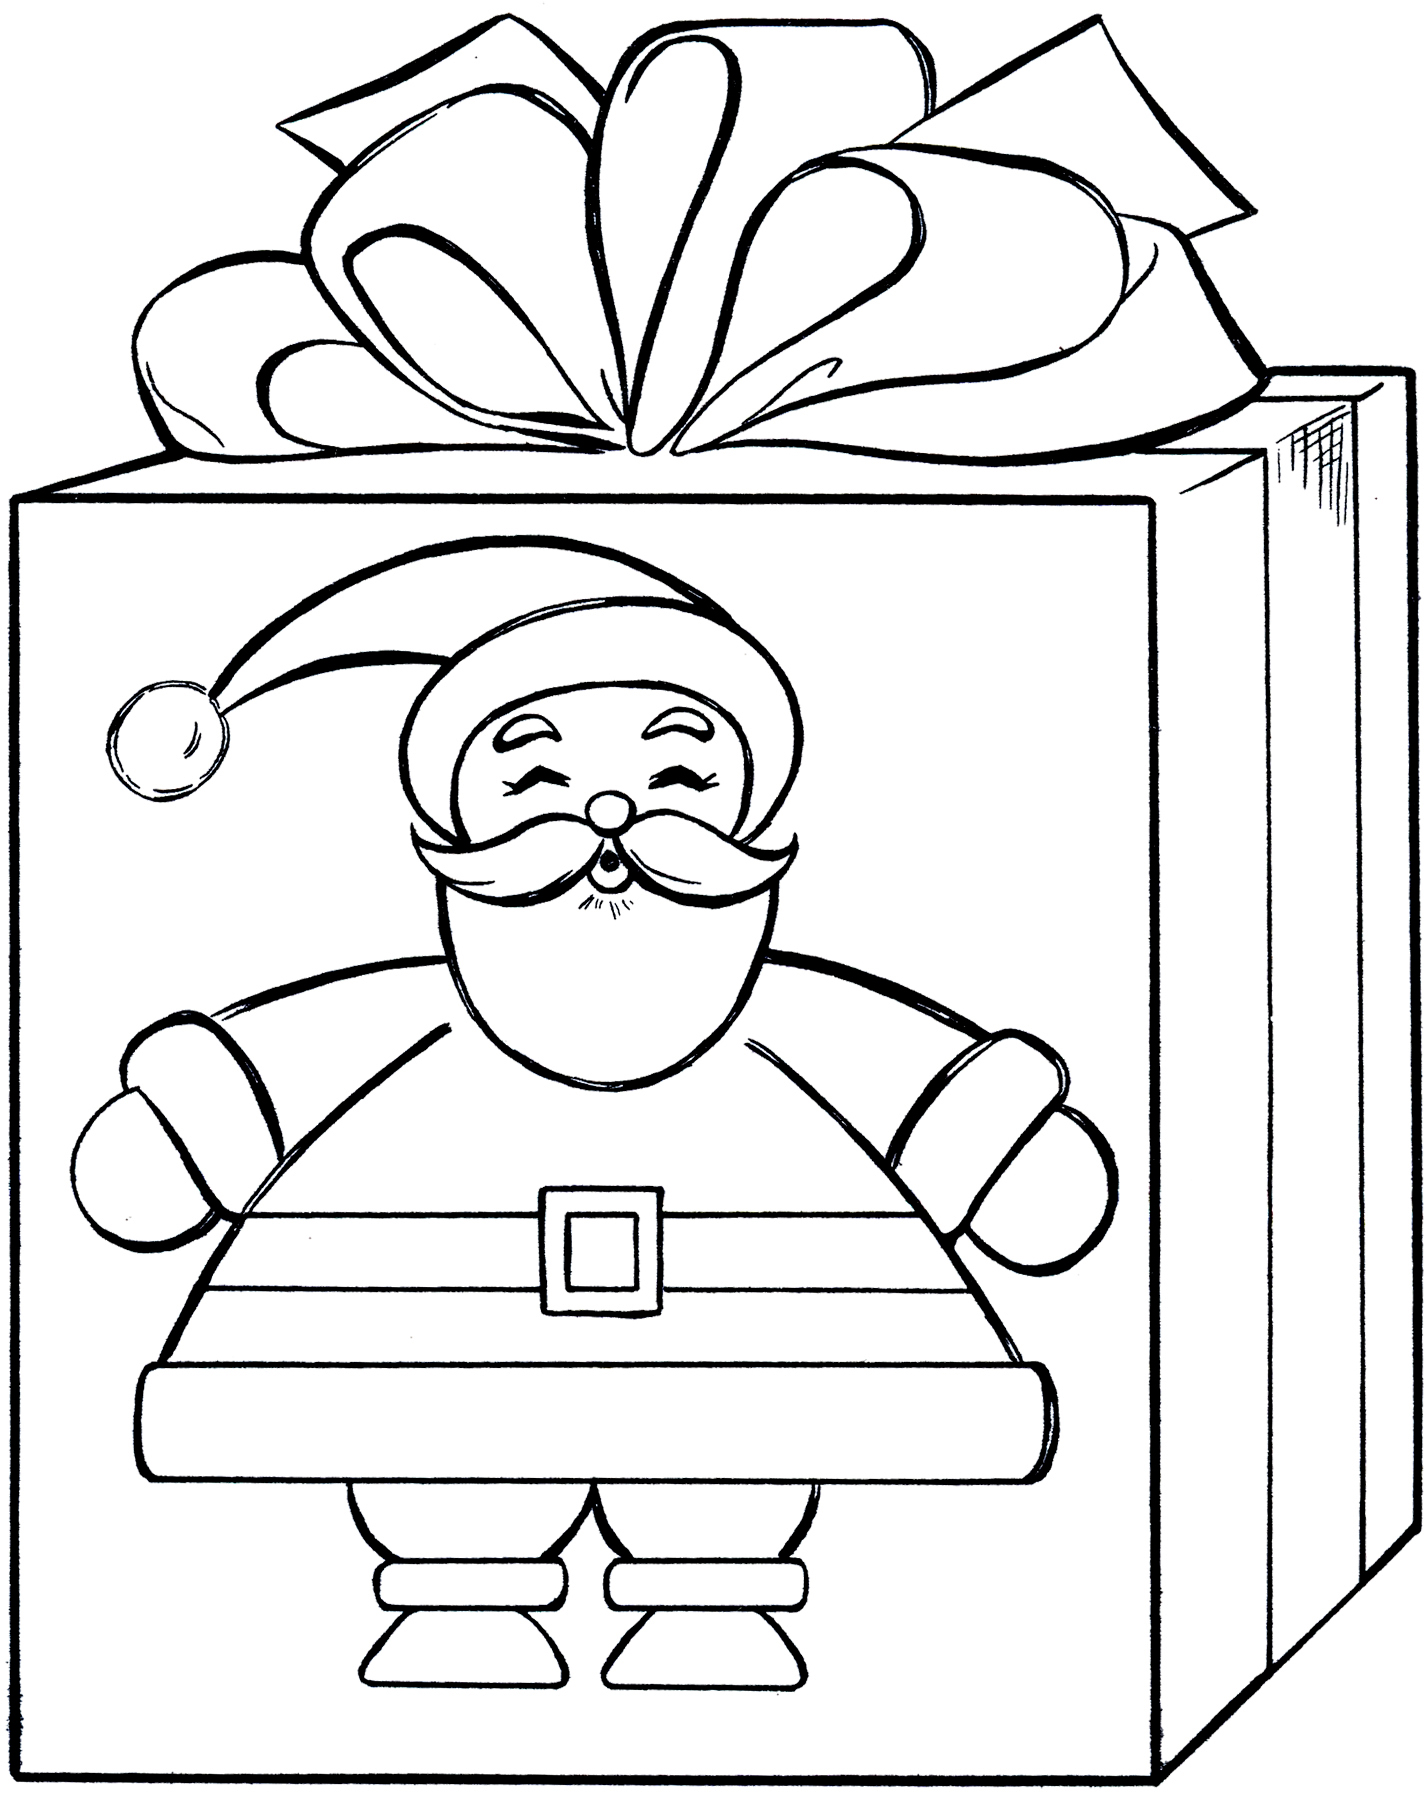 Santa Coloring Clip Art With Clipart Gift Graphics Illustrations Free Download On